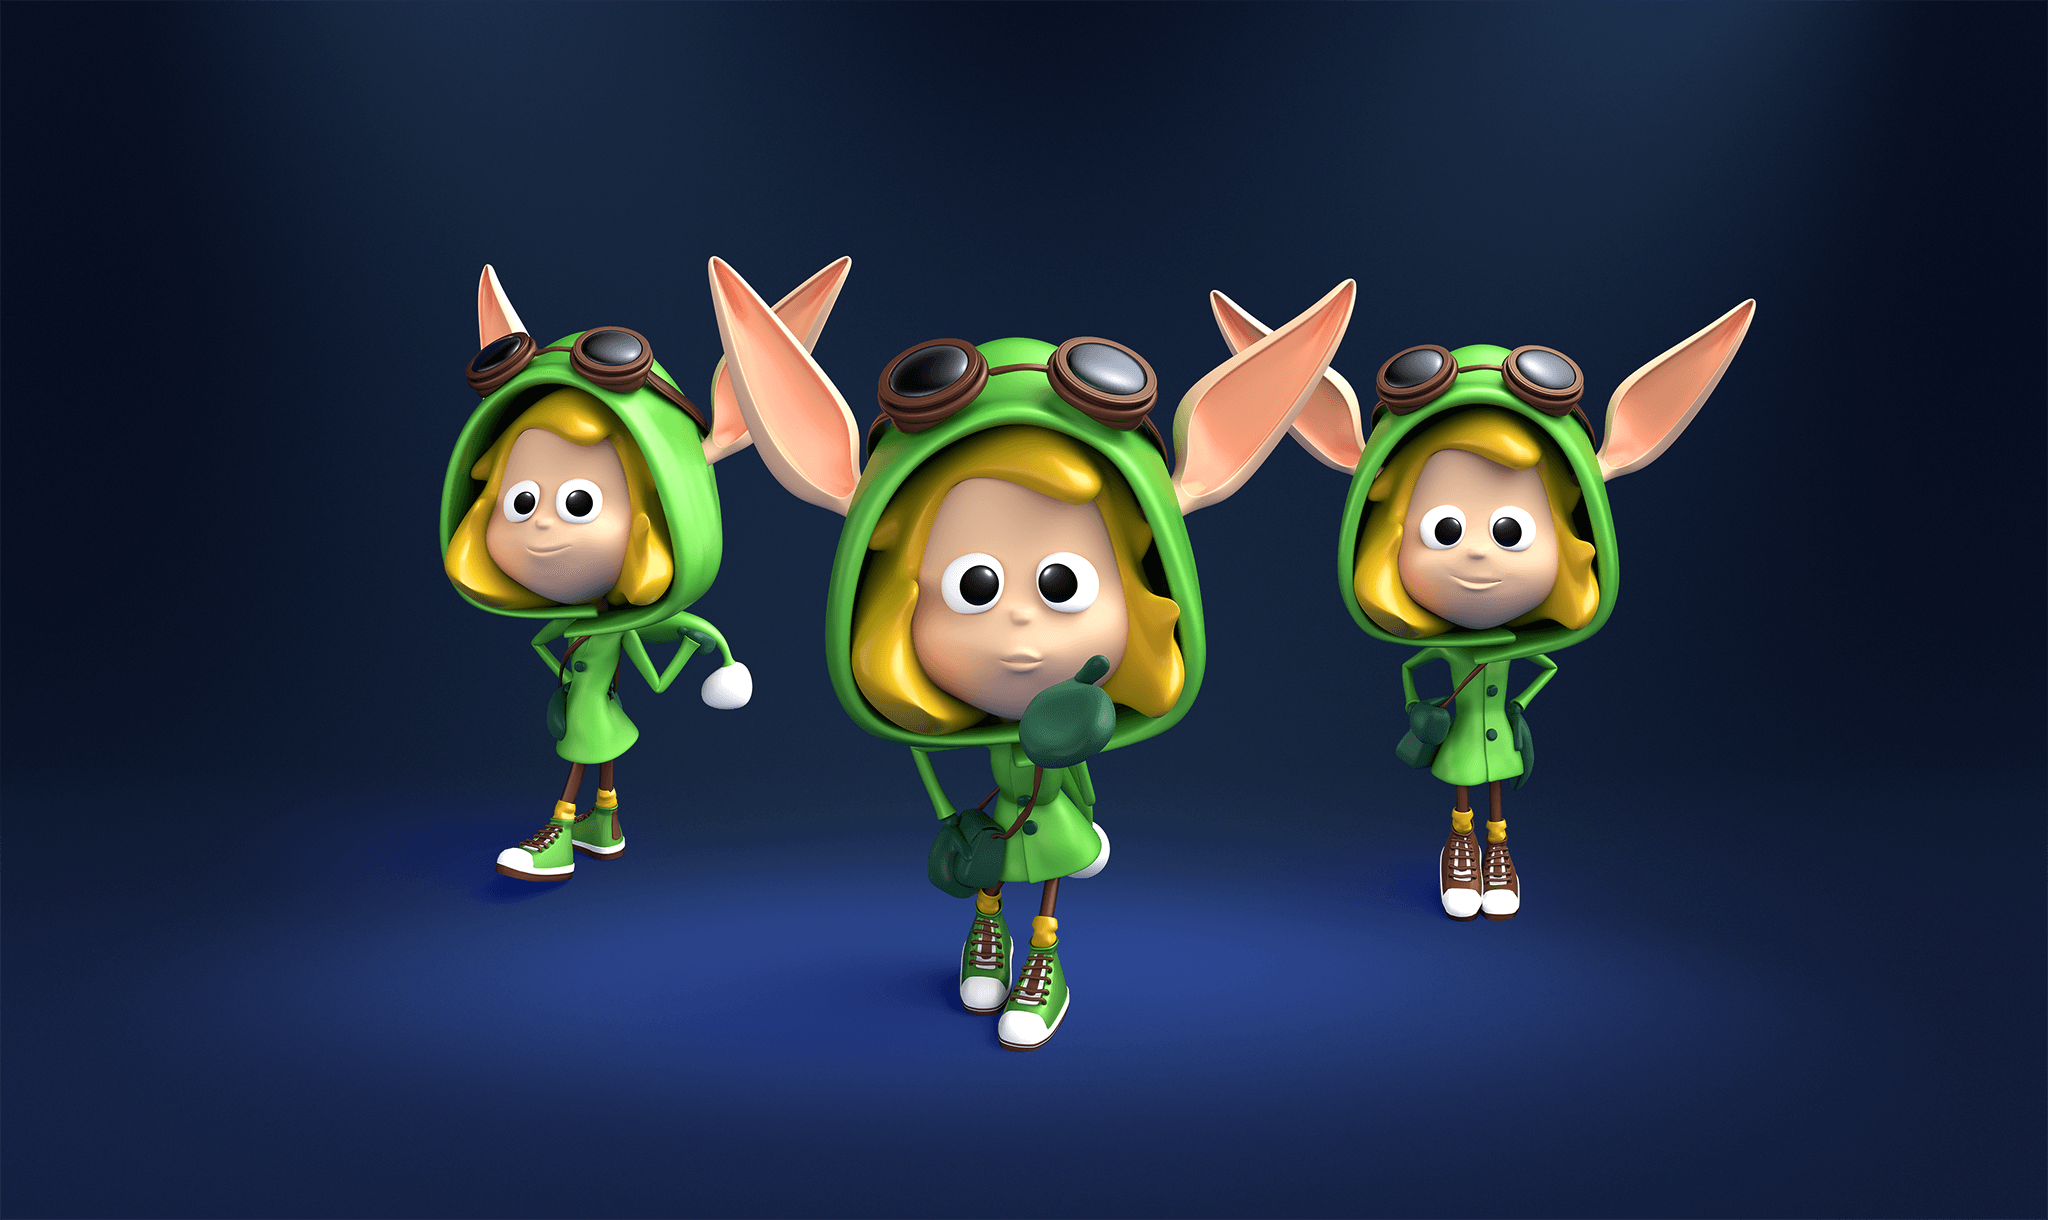 3d character toon of a Christmas Elf in various poses